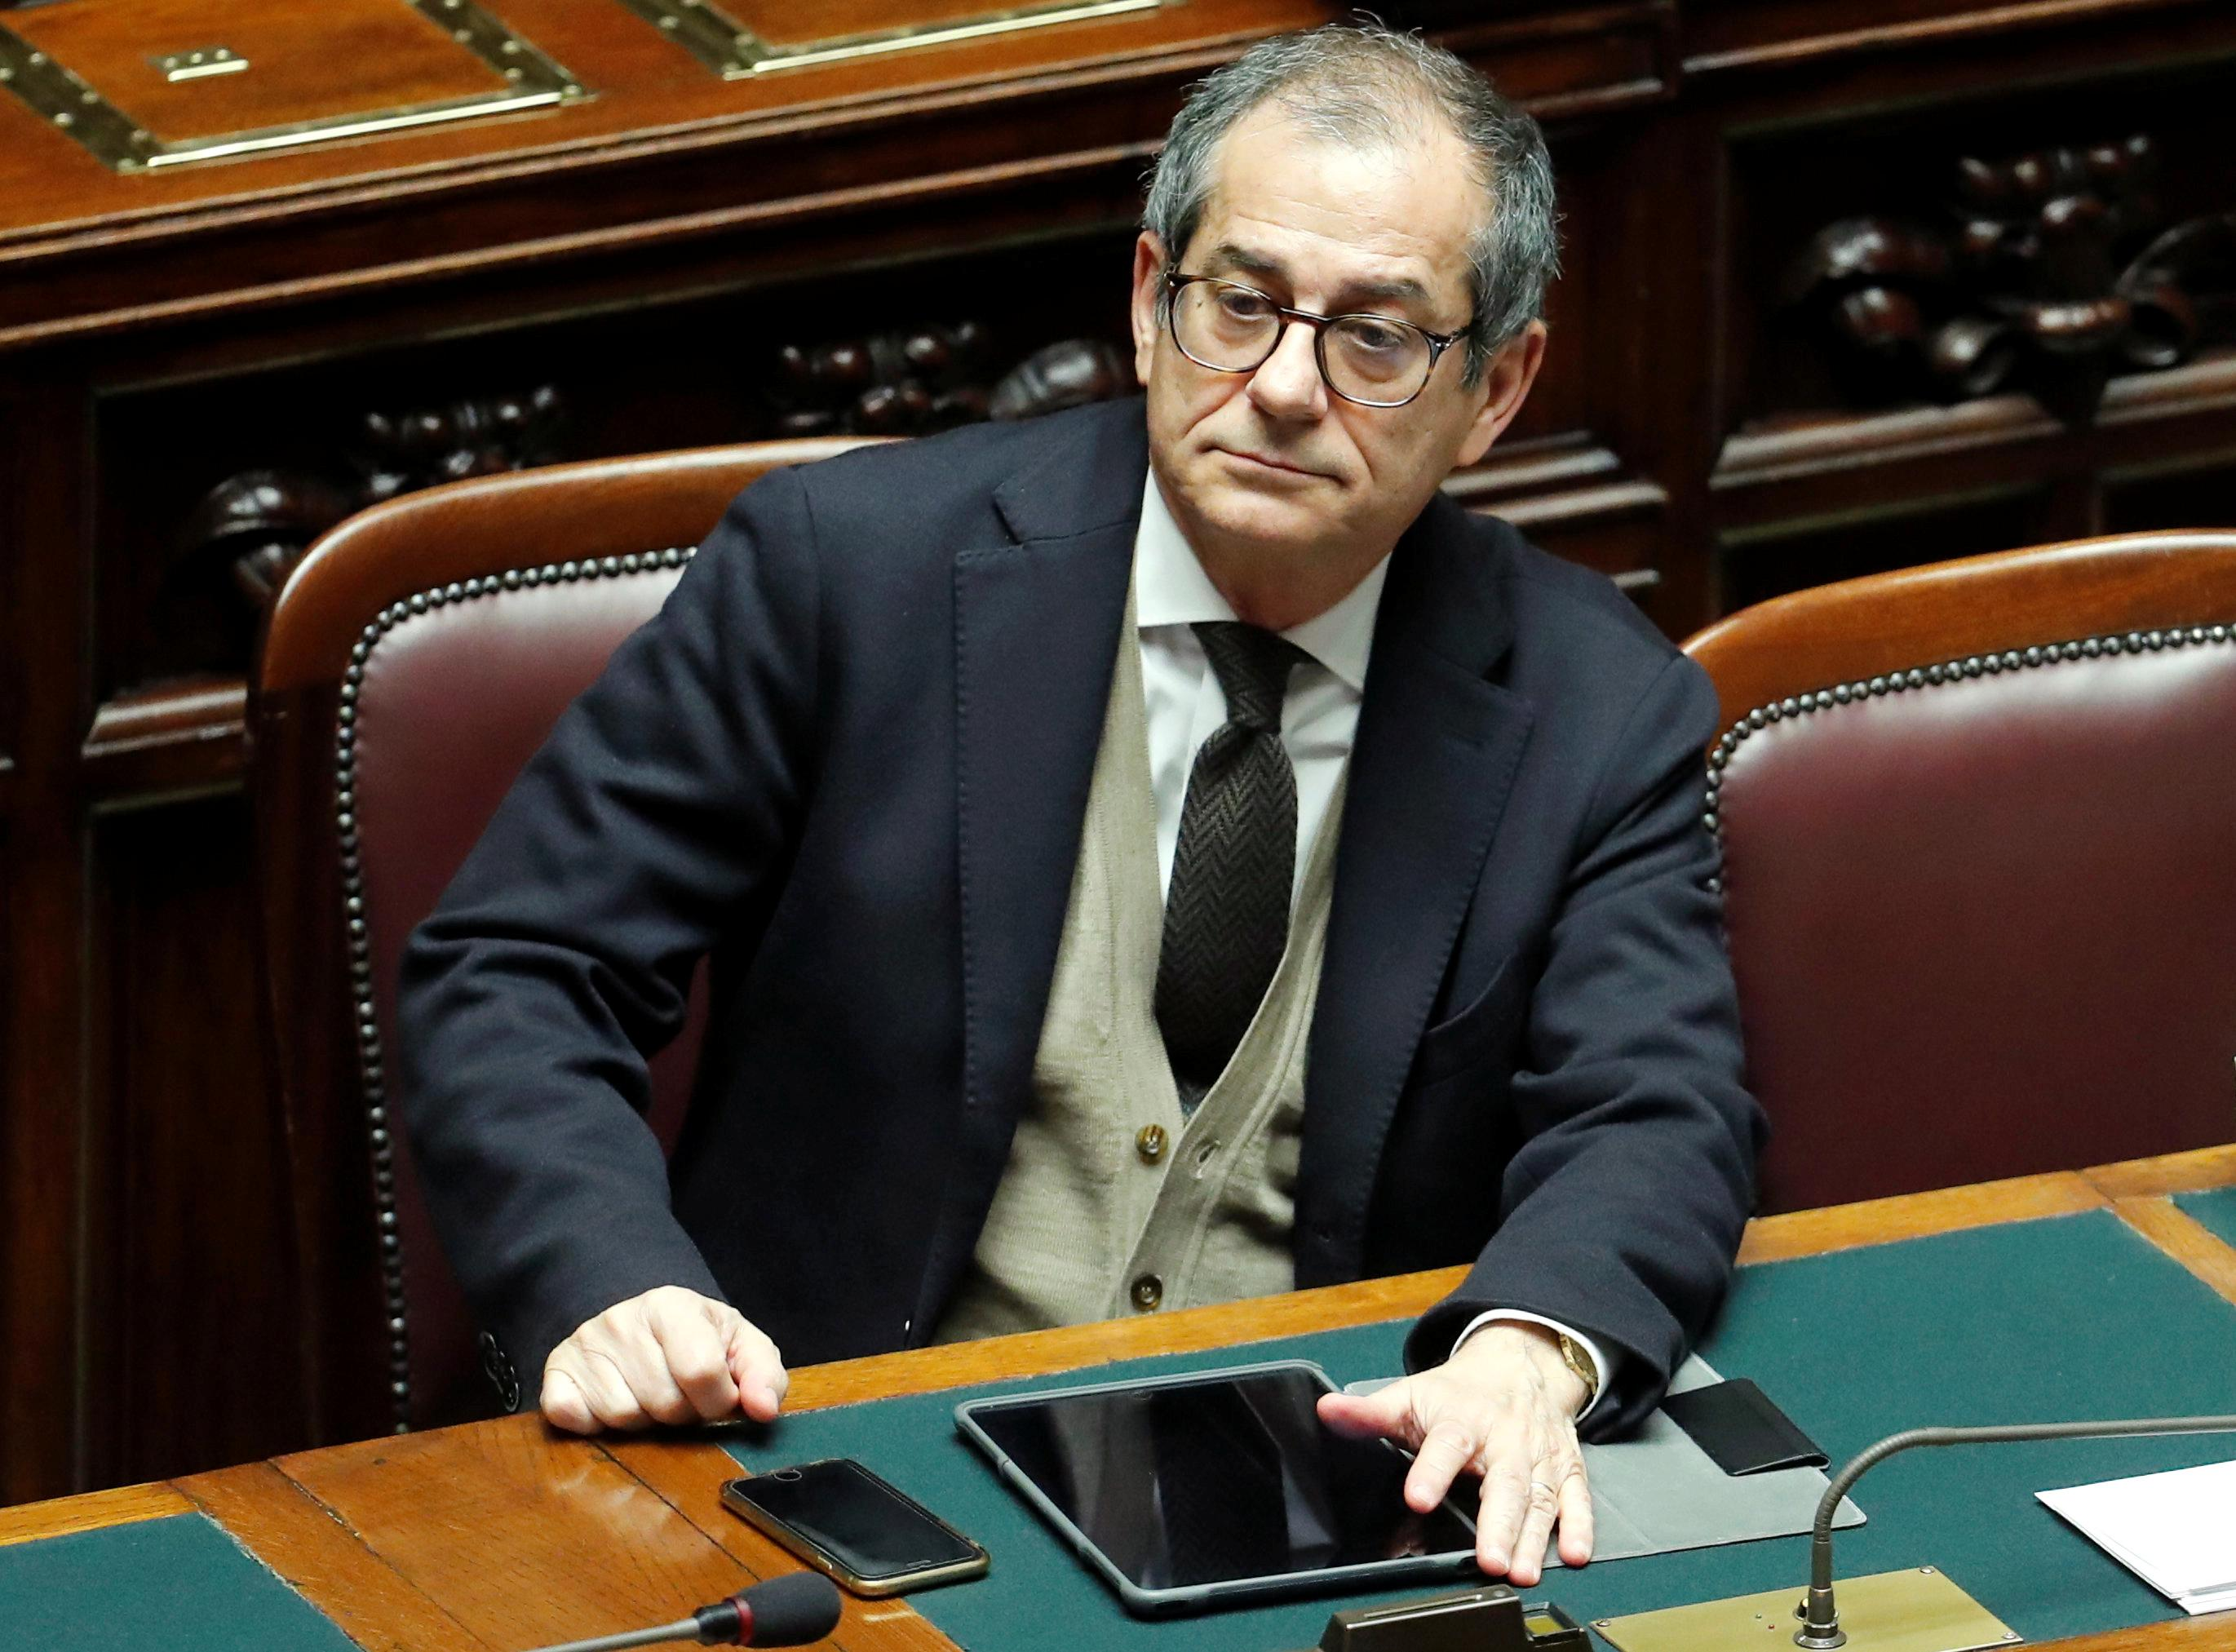 Italy promises to obey EU fiscal rules as debt rises